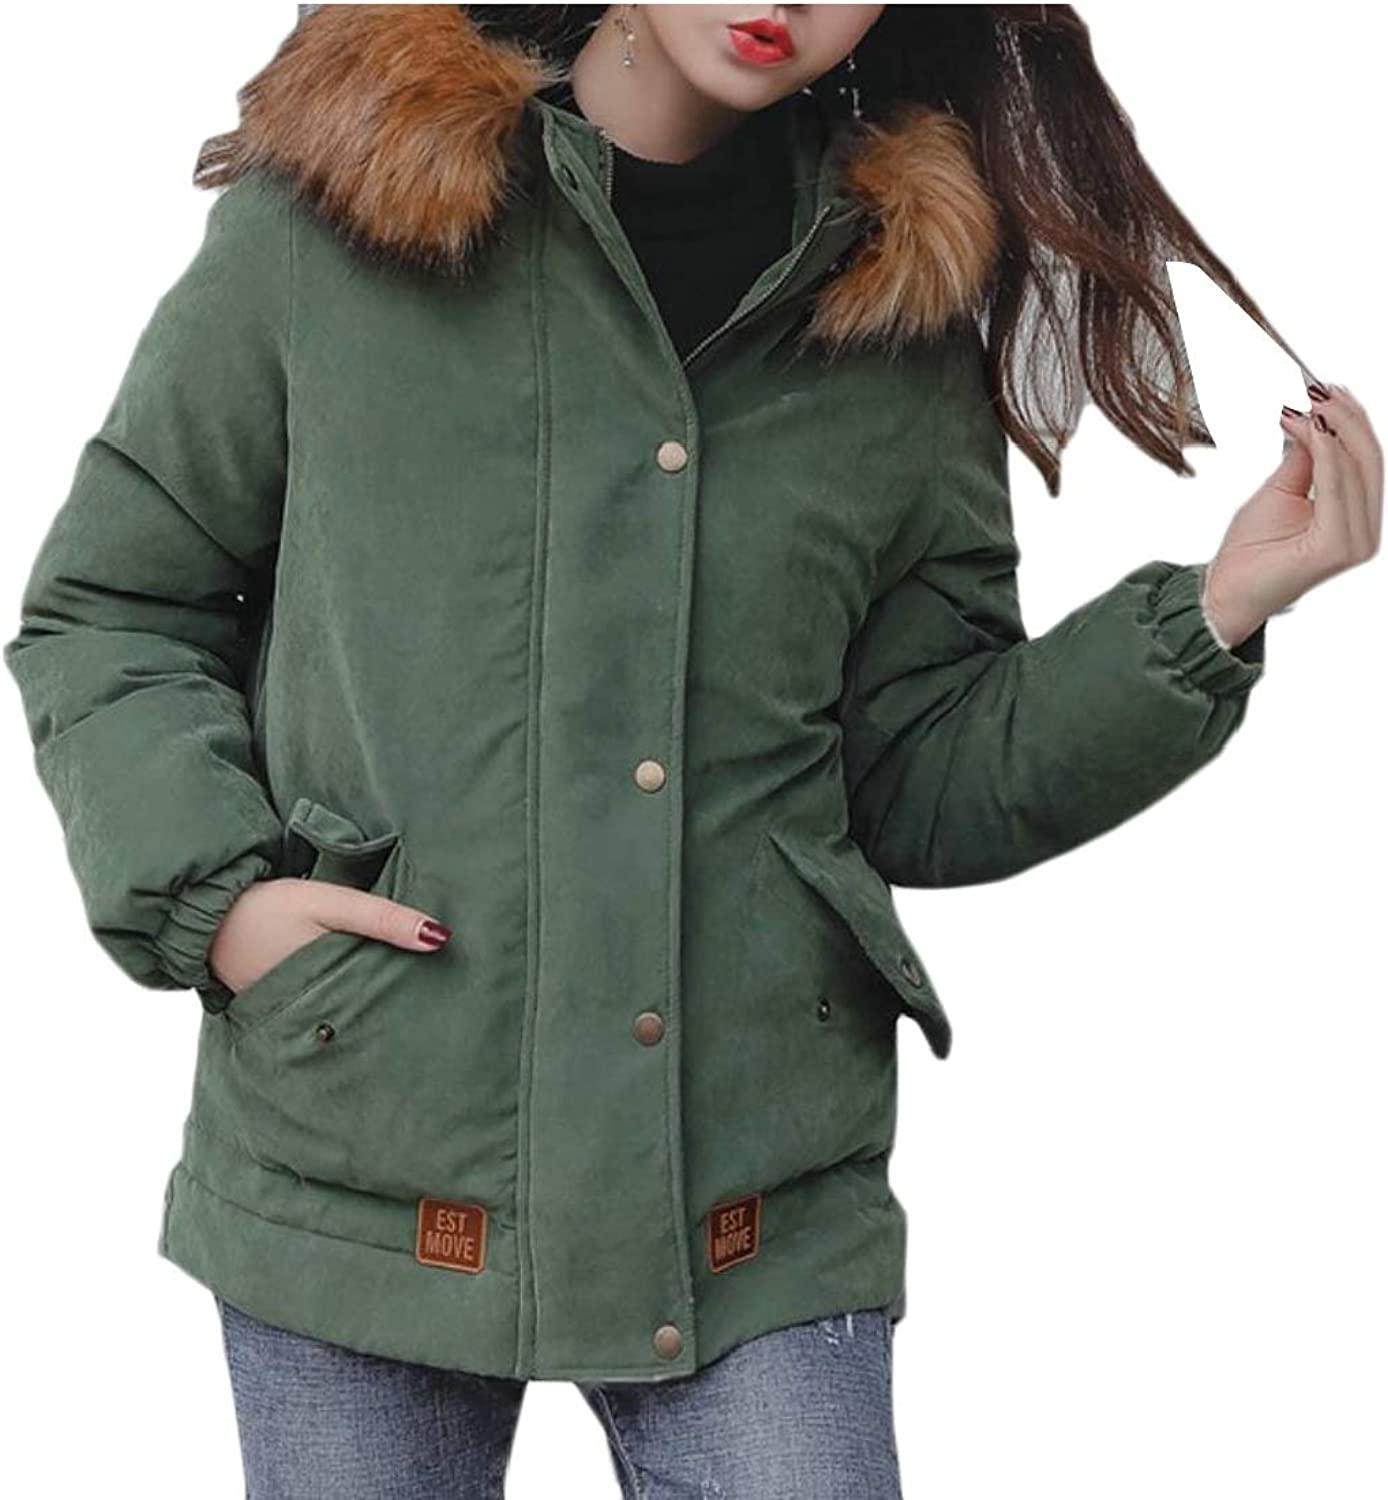 Maweisong Womens Winter Coat Faux Fur Parkas Outdoor Parka Hooded Warm Jacket